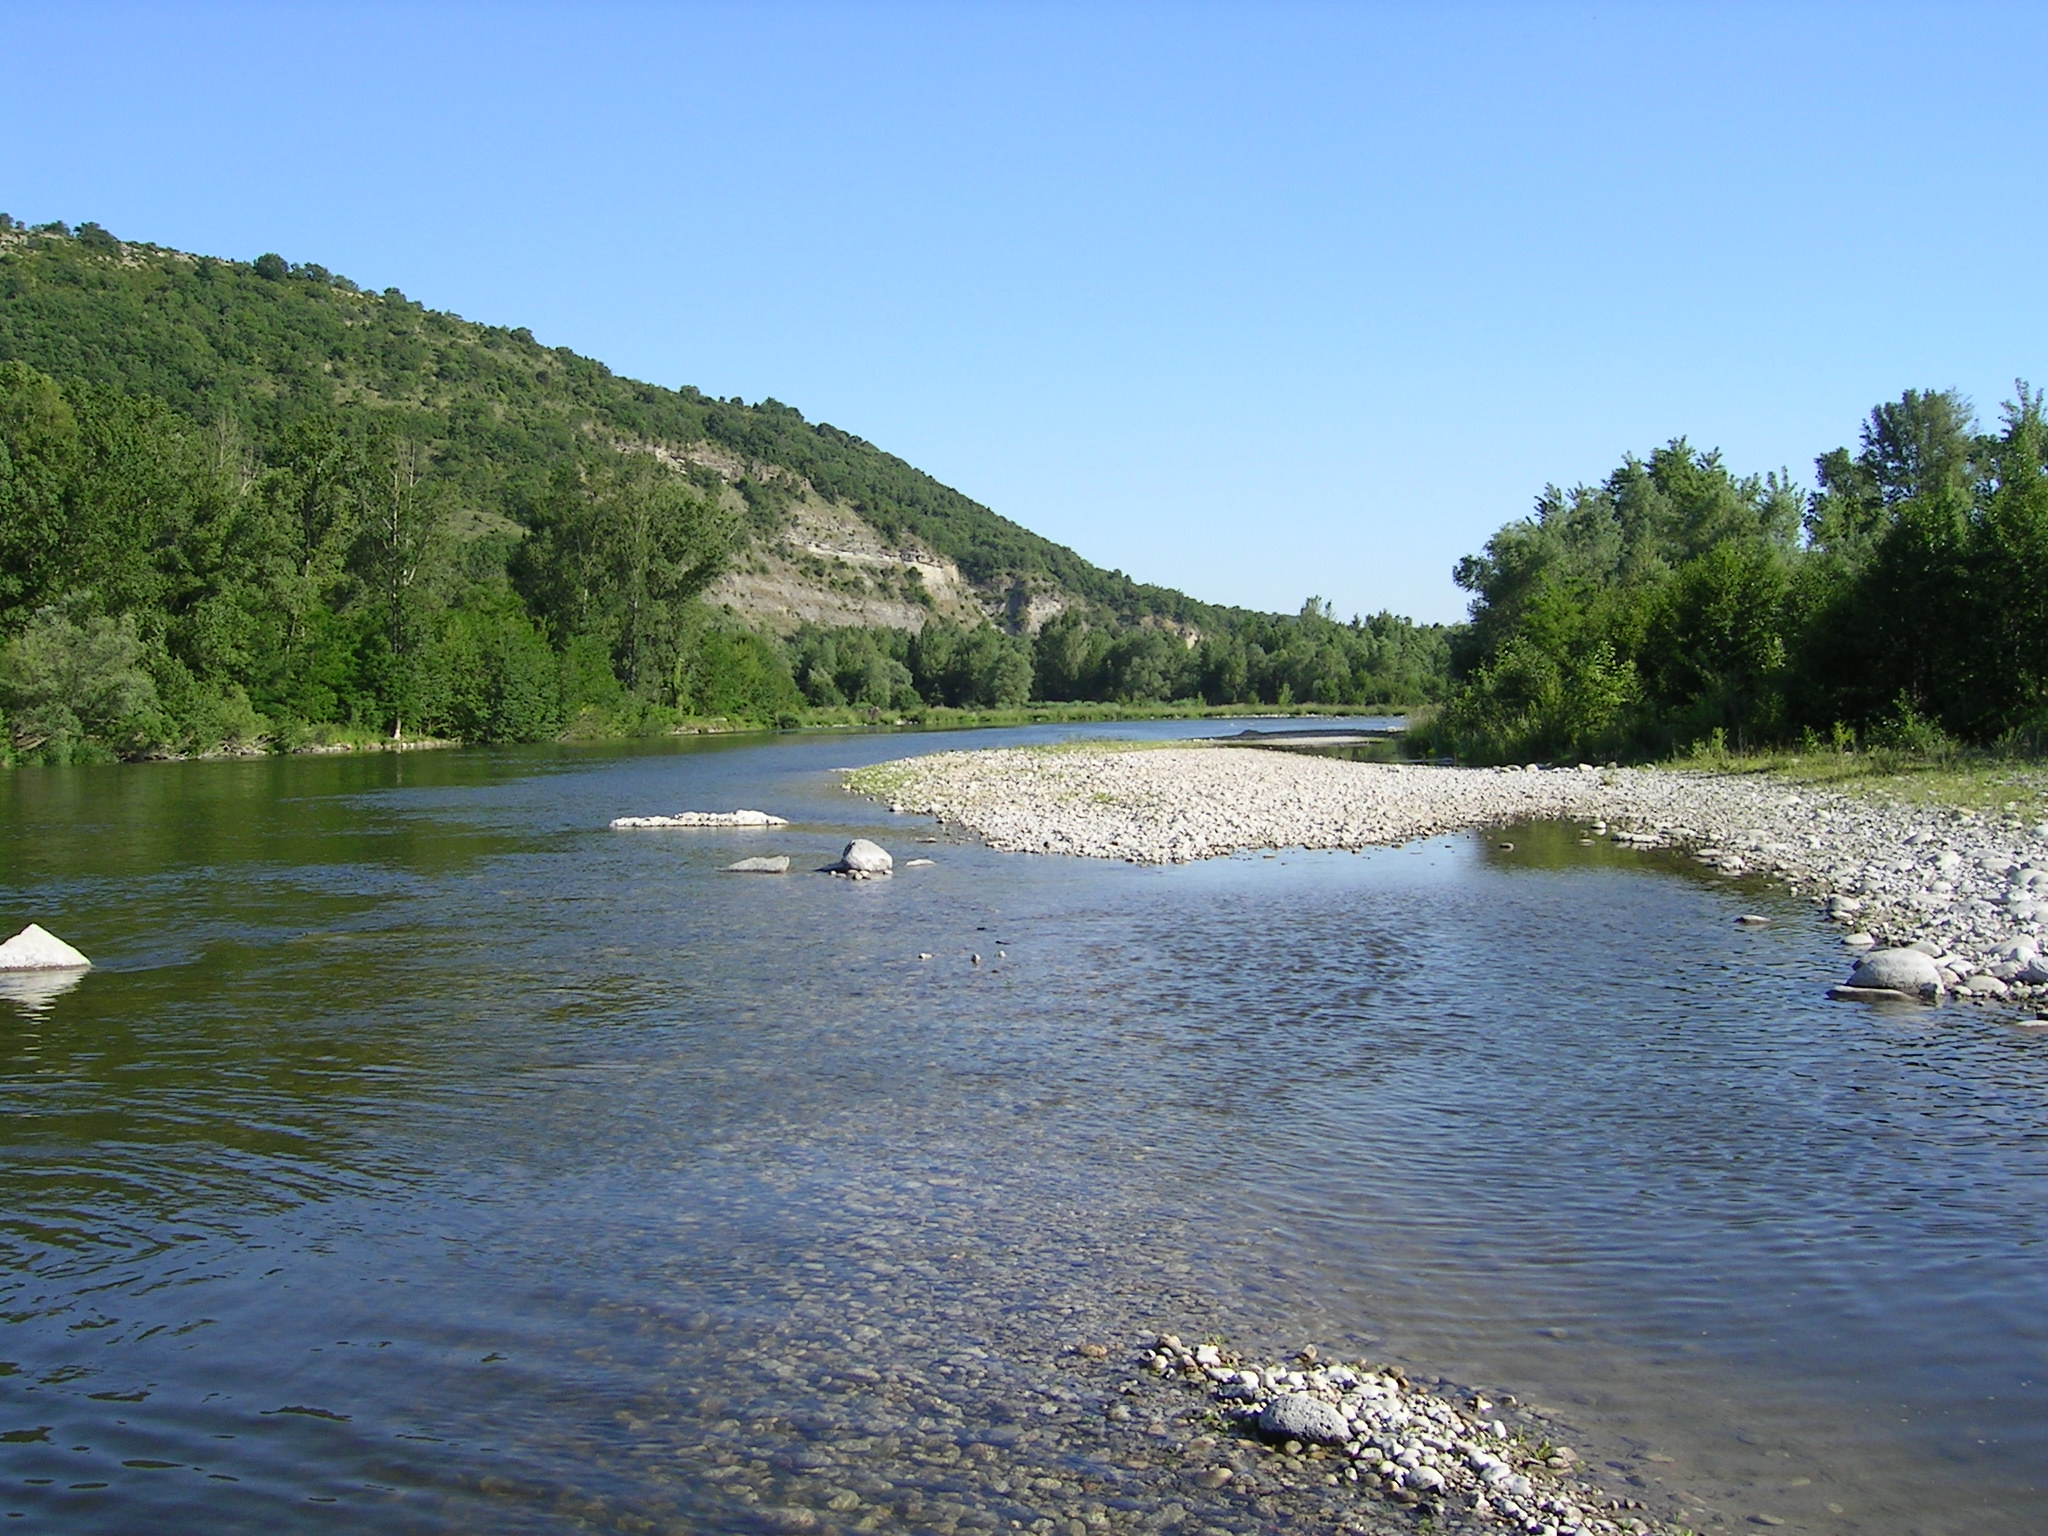 File:Ardèche River France.jpg  Wikipedia, the free encyclopedia